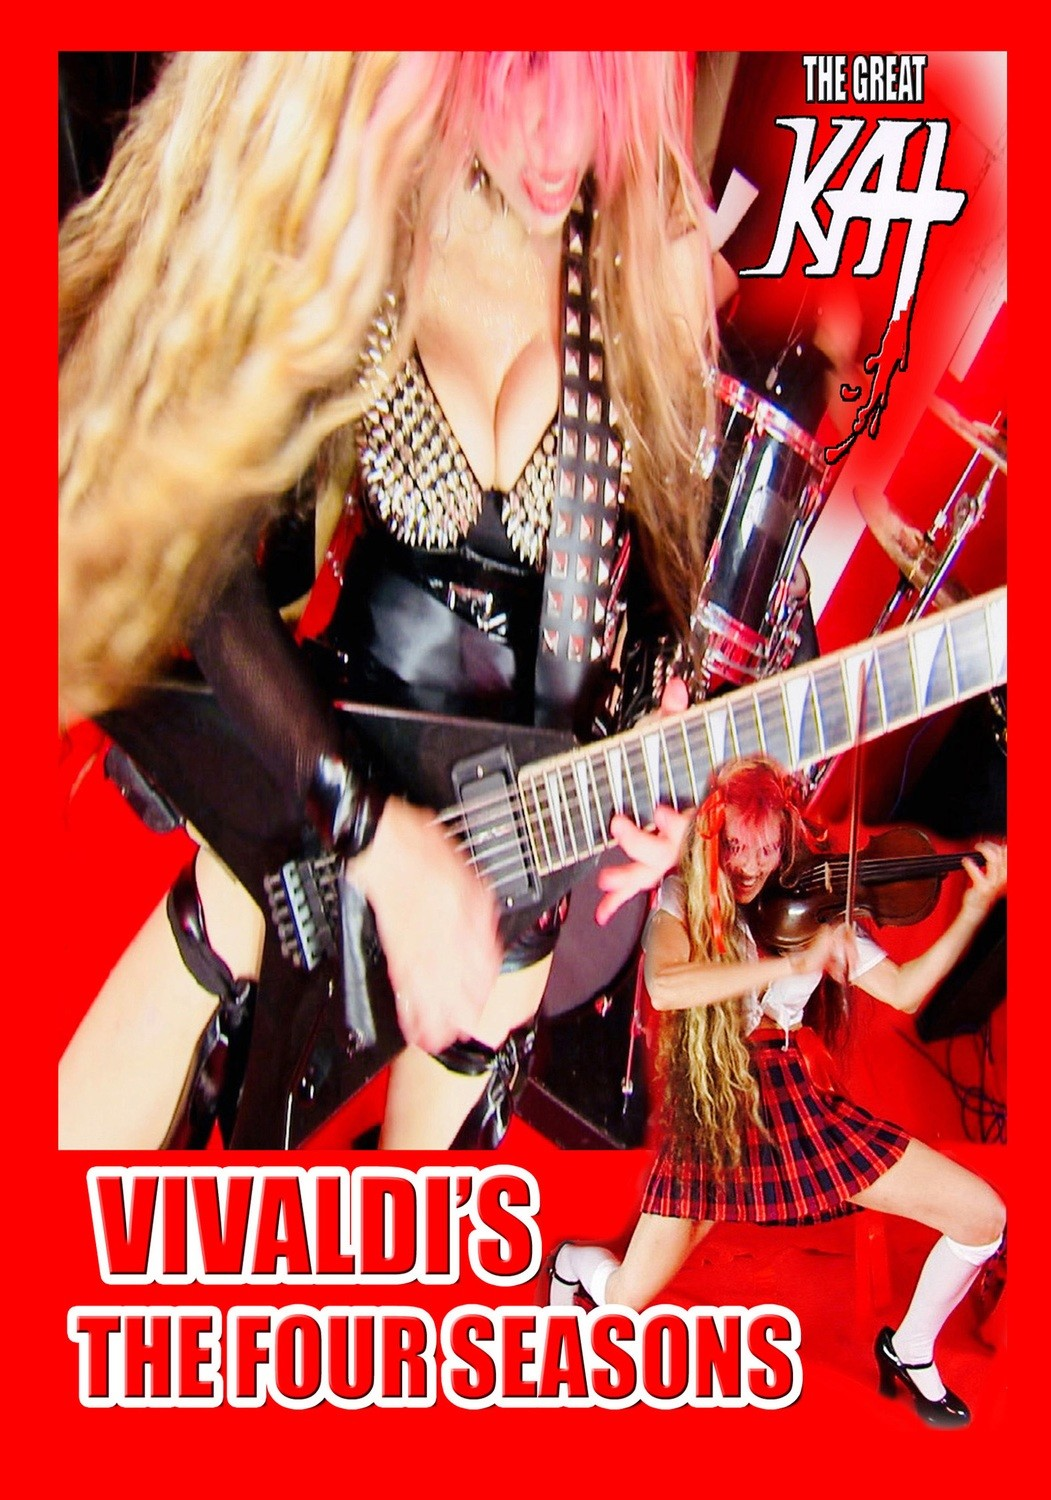 """""""VIVALDI'S THE FOUR SEASONS"""" MUSIC VIDEO SINGLE DVD (2:13)! By The Great Kat! PERSONALIZED AUTOGRAPHED by THE GREAT KAT! (Signed to Customer's Name)"""